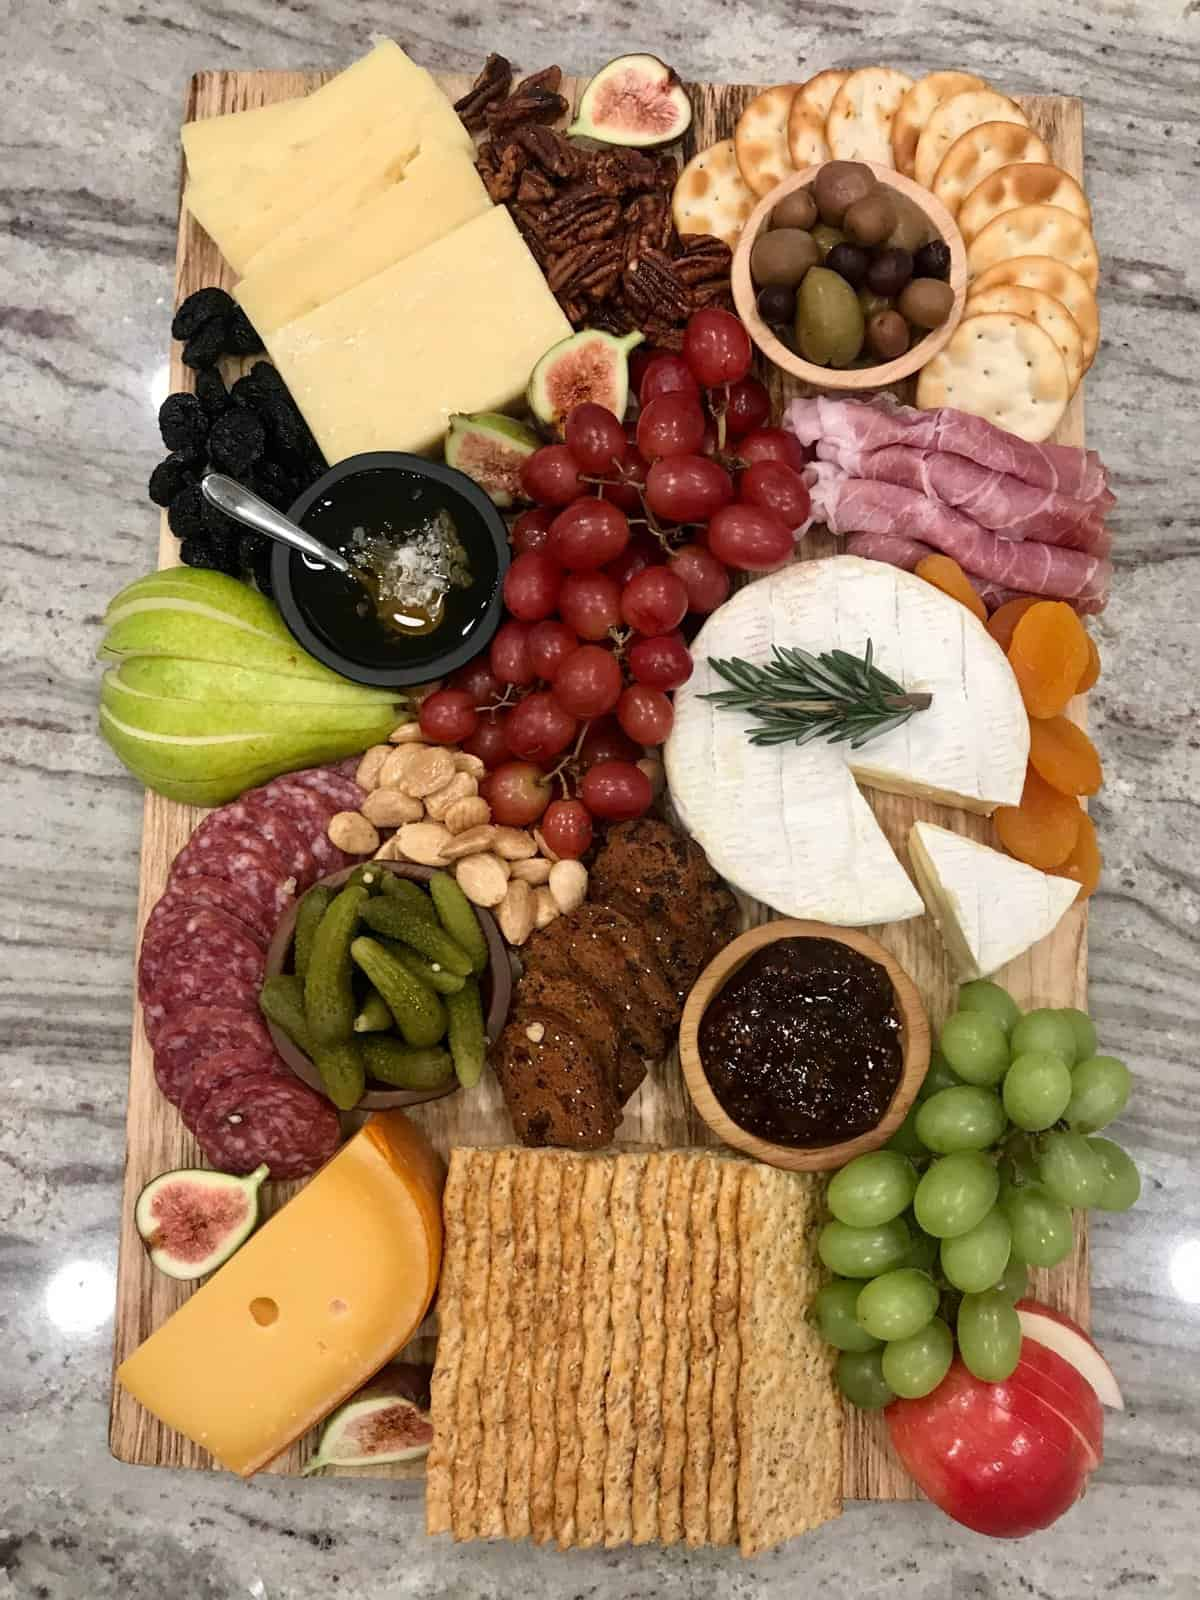 How to Build a Beautiful Cheese and Charcuterie Board with The BakerMama